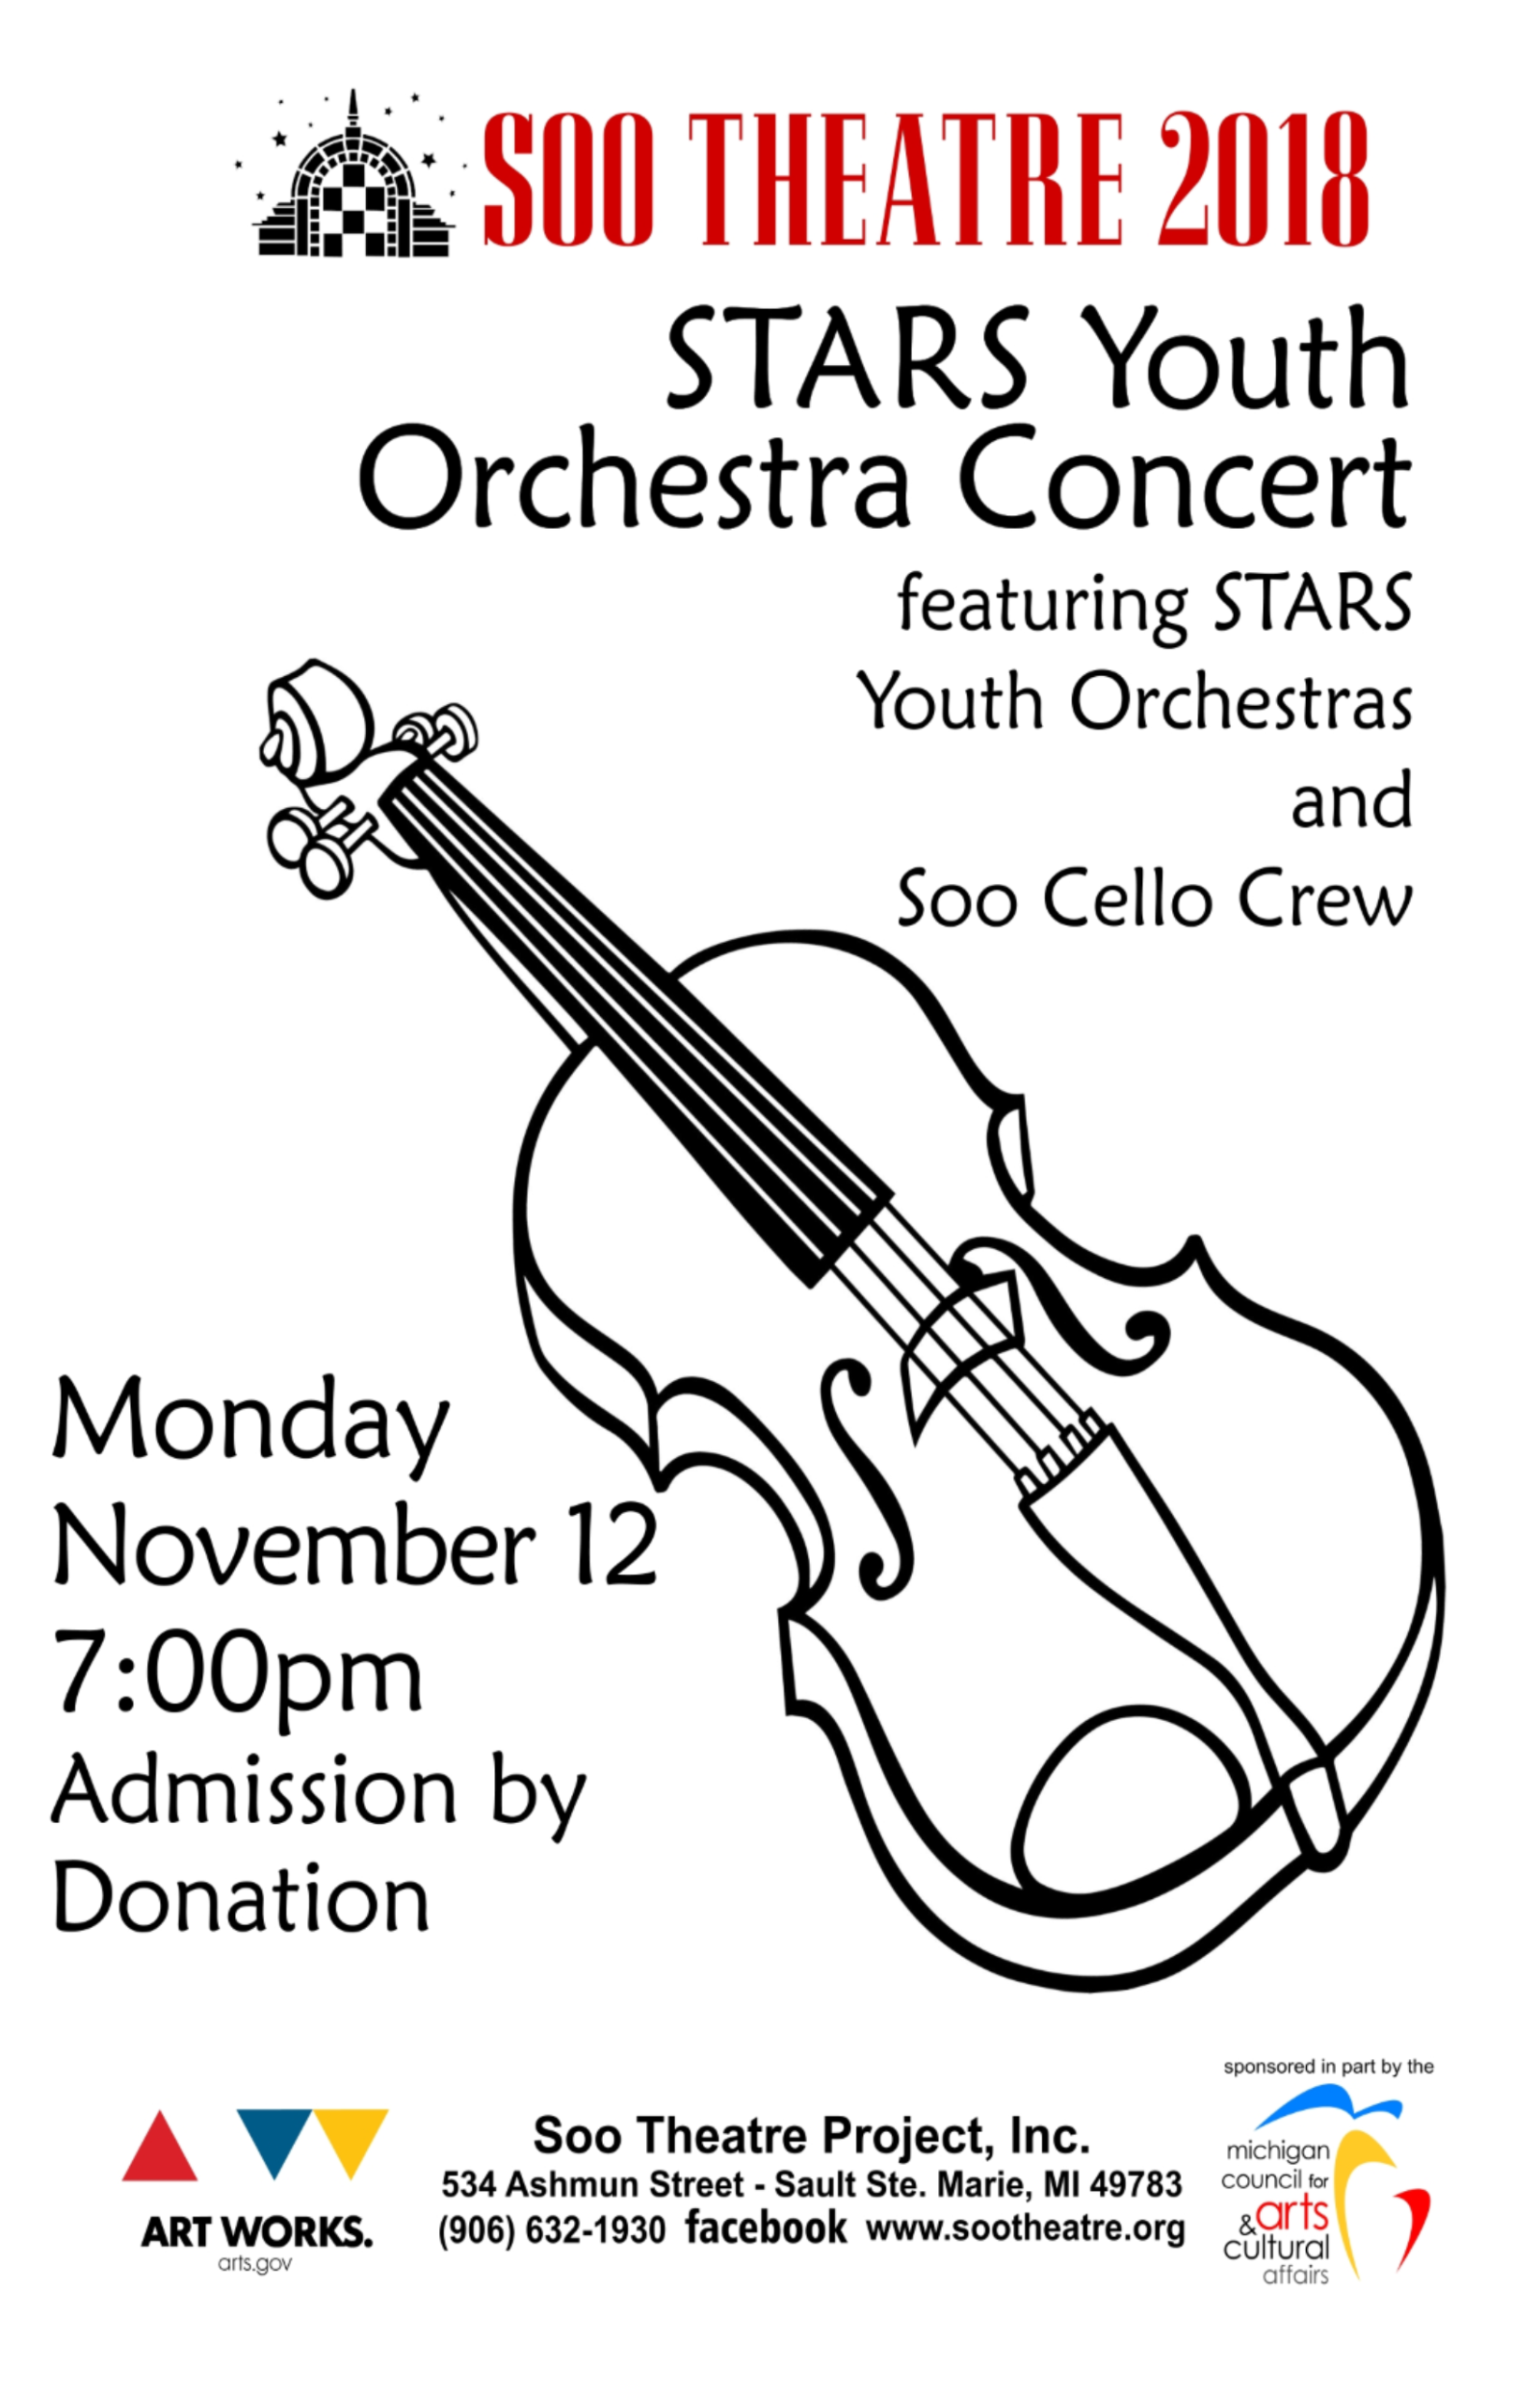 STARS Youth Orchestra & Soo Cello Crew Concert – The Soo Theatre